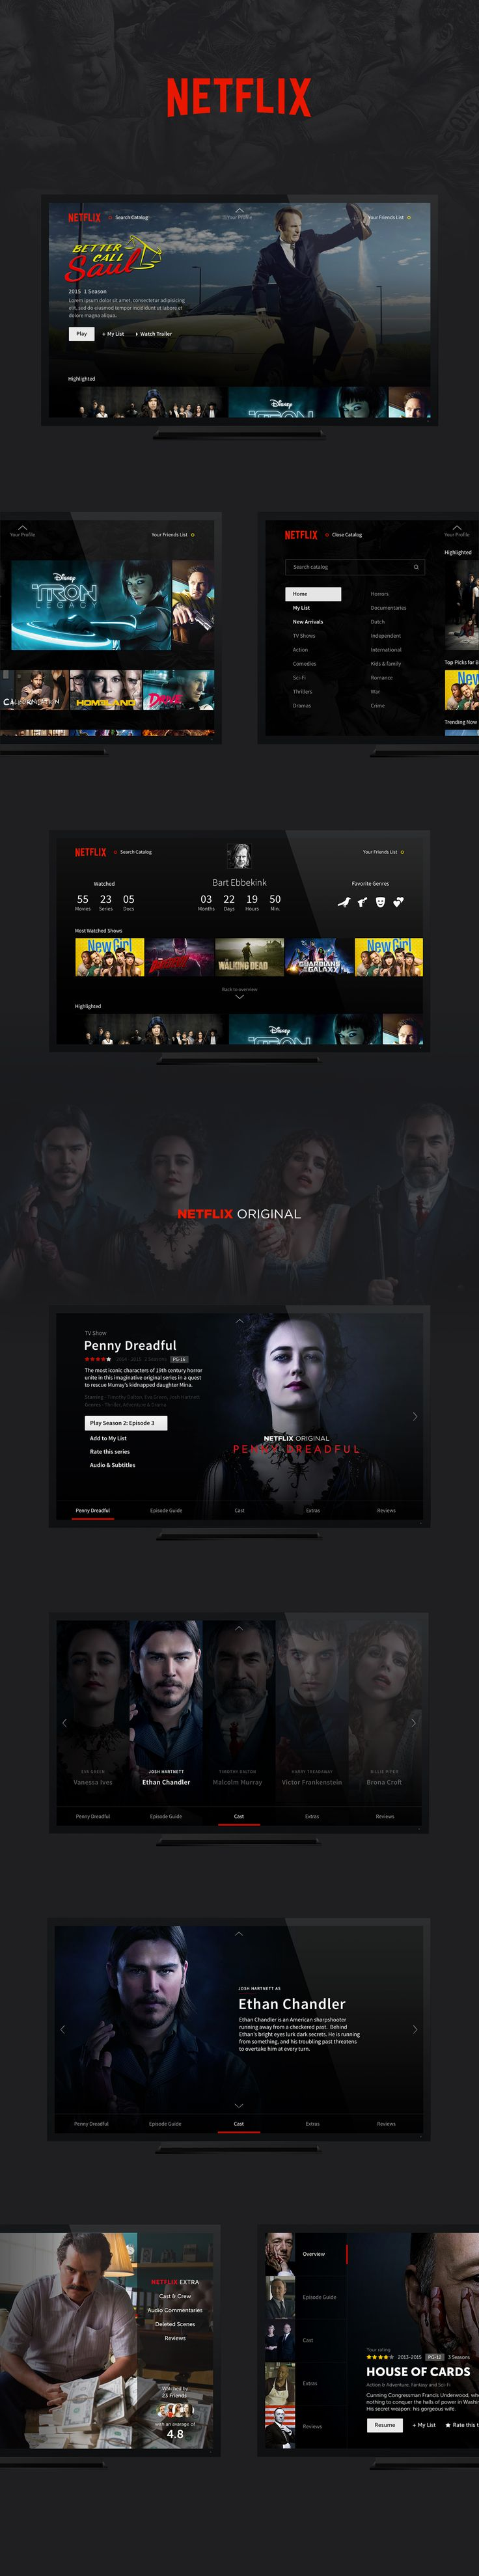 netflix concept https://dribbble.com/shots/2237822-Netflix-Exploration